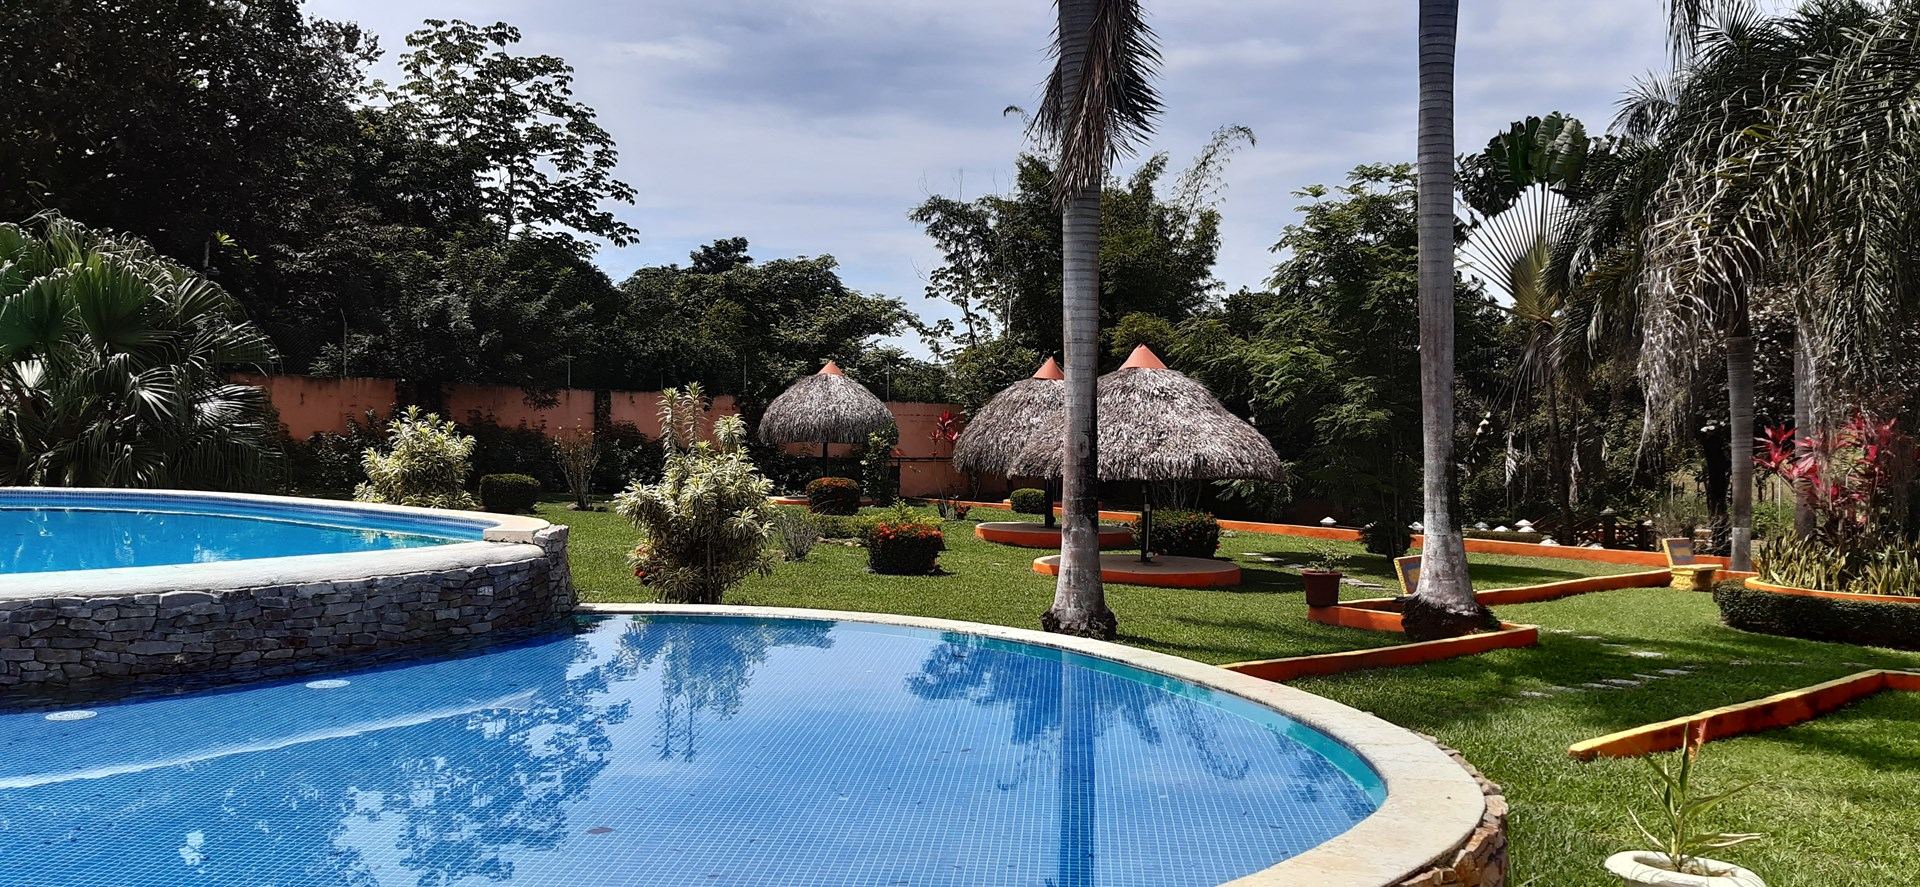 CHEAP 2 BEDROOM HOUSE FOR RENT COCLE ANTON